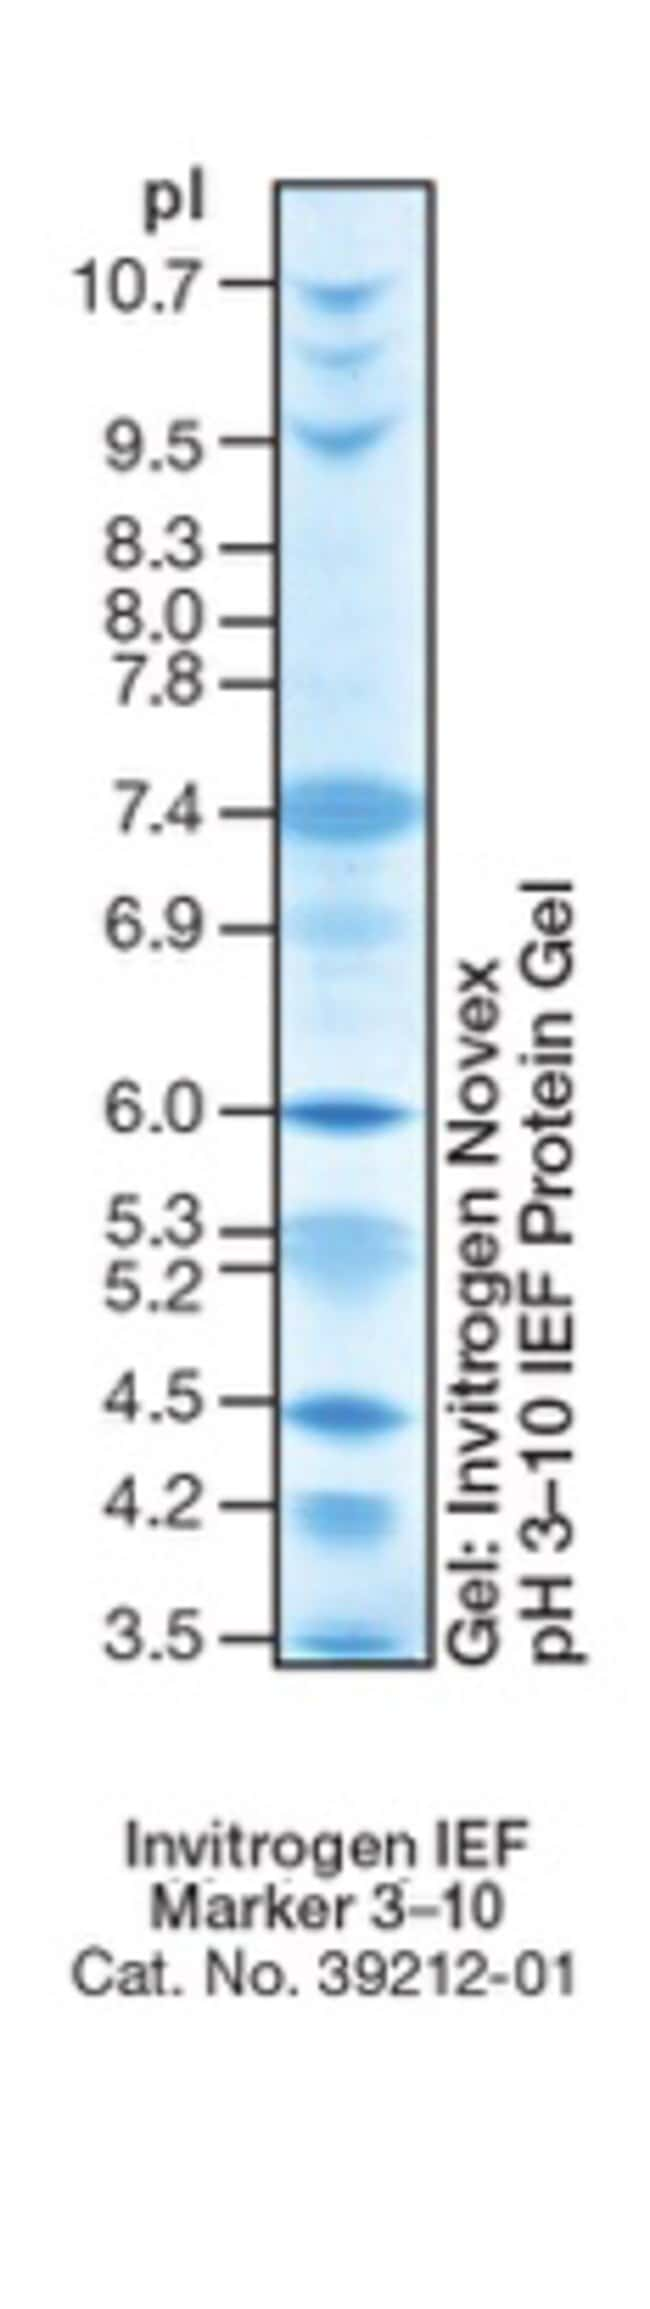 IEF Marker 3-10 band profile